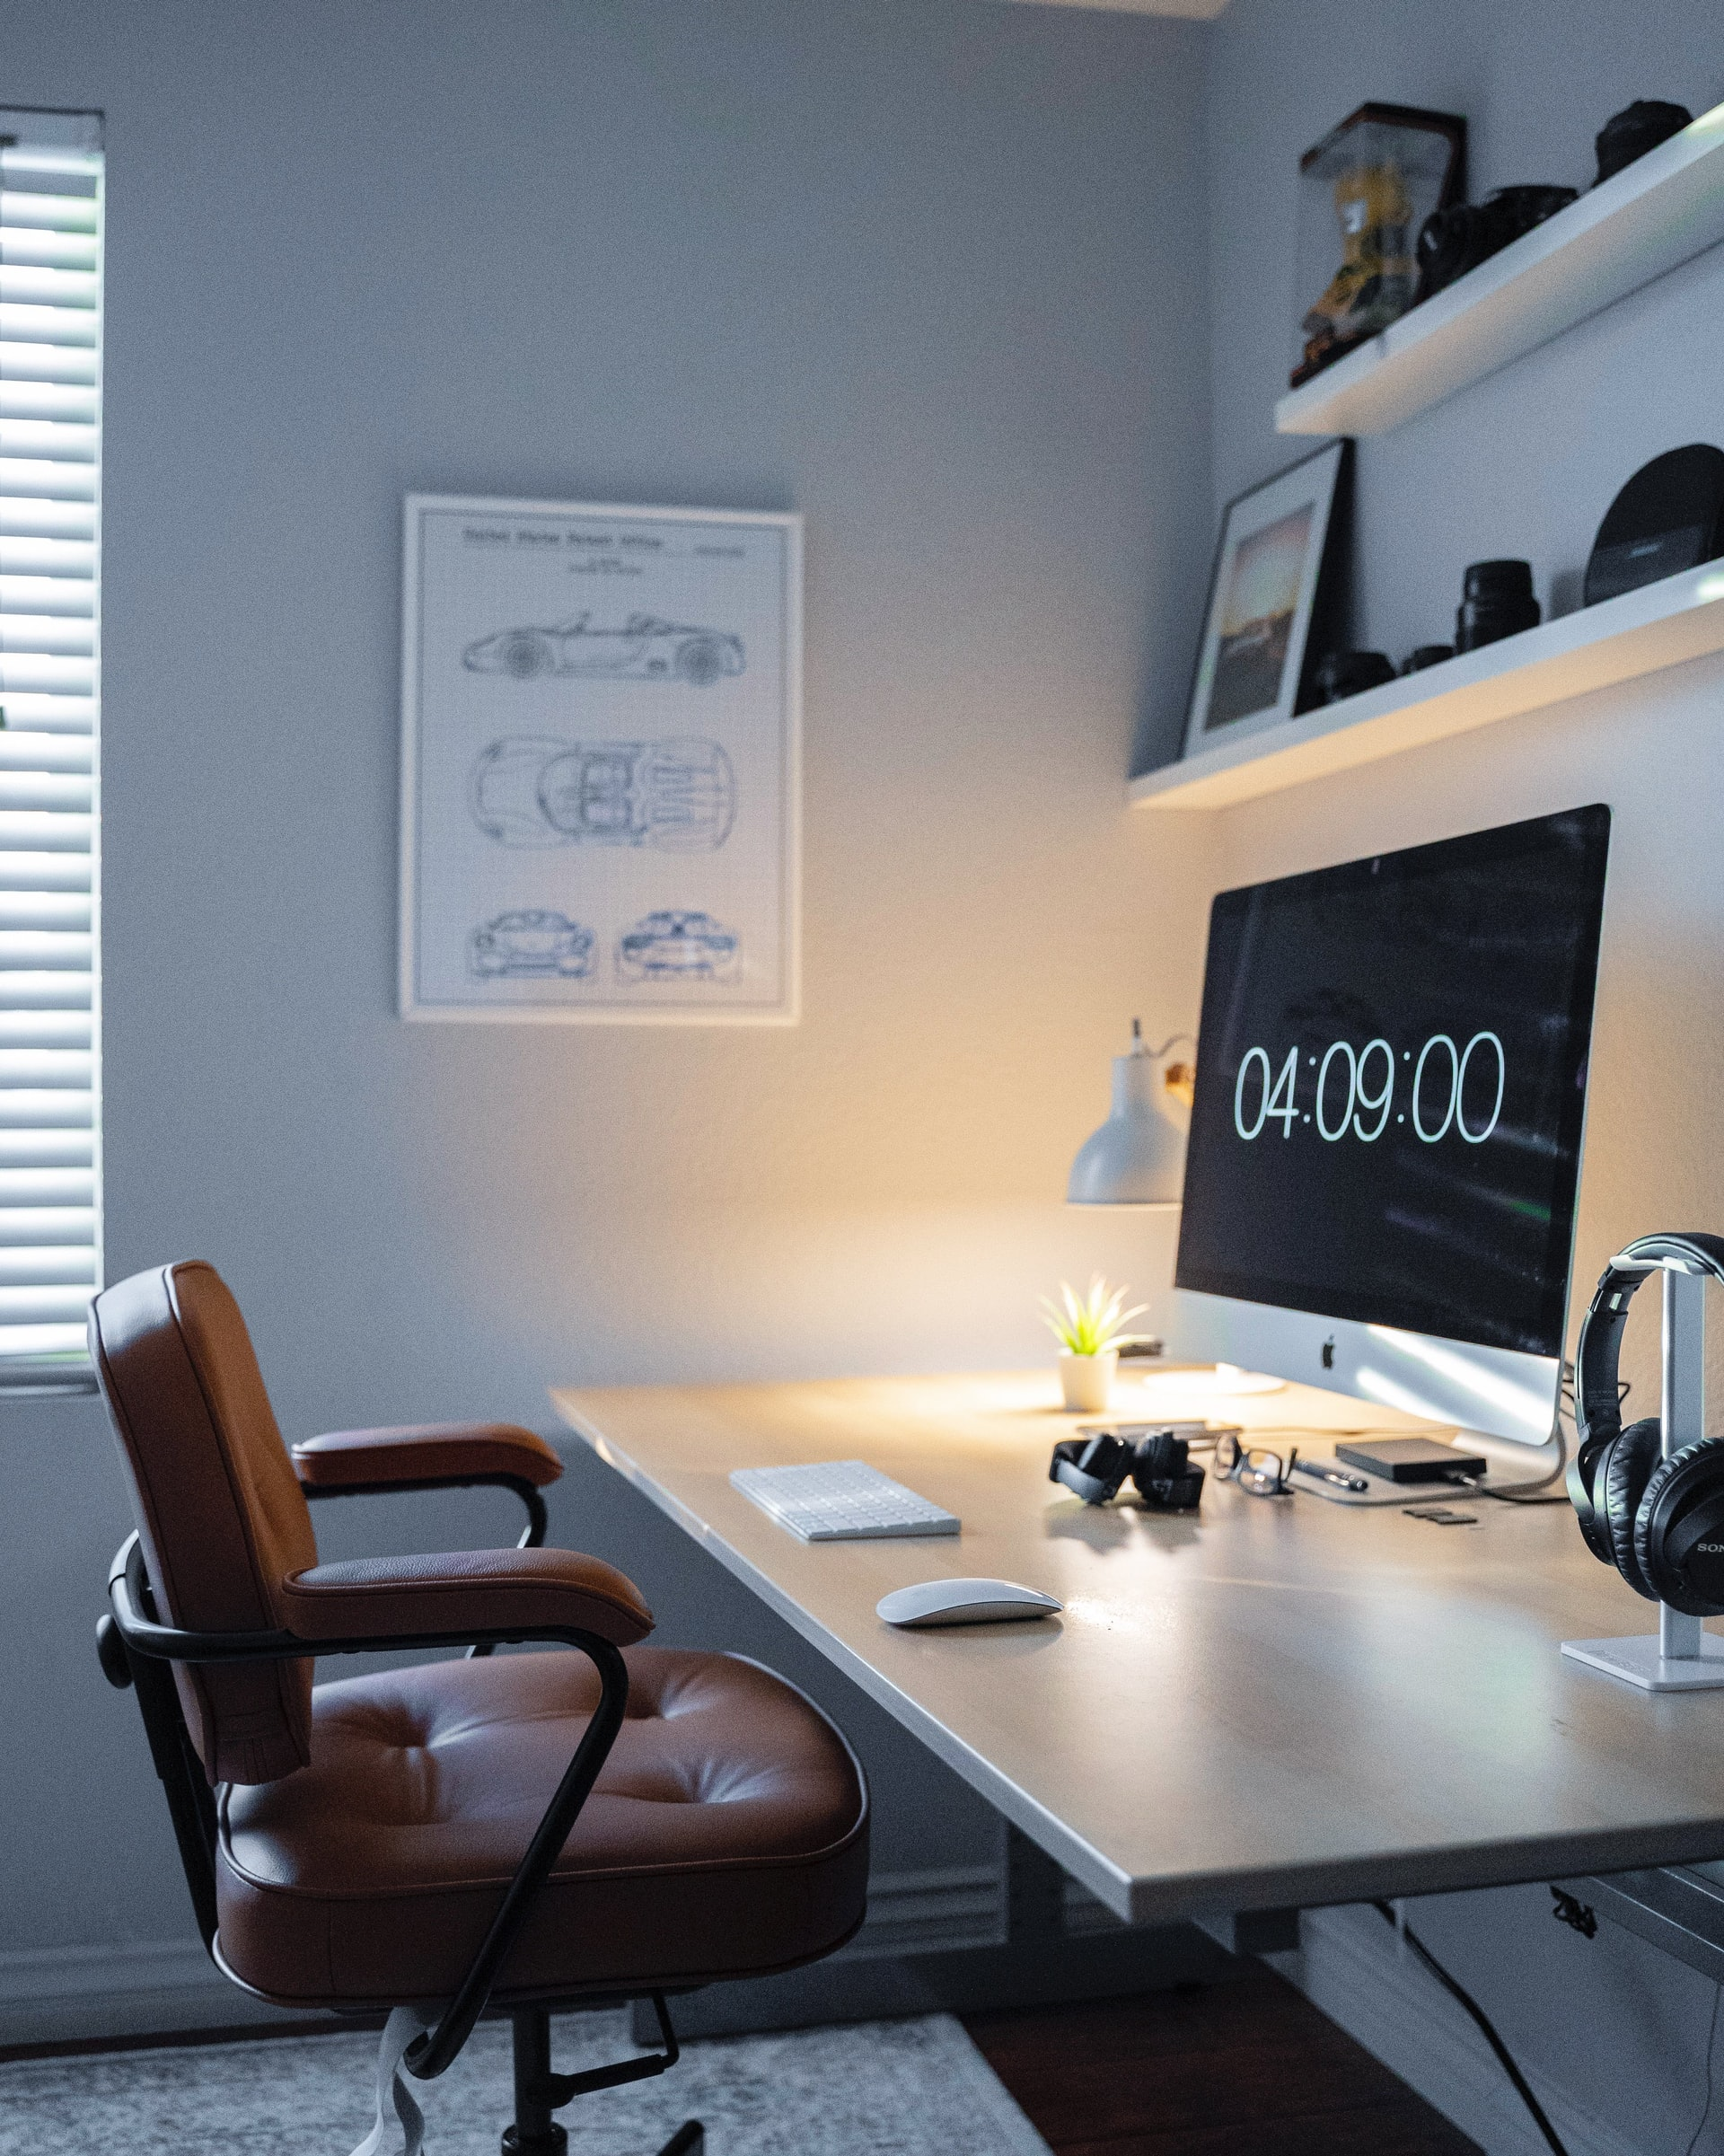 Home Office Equipment Article Image